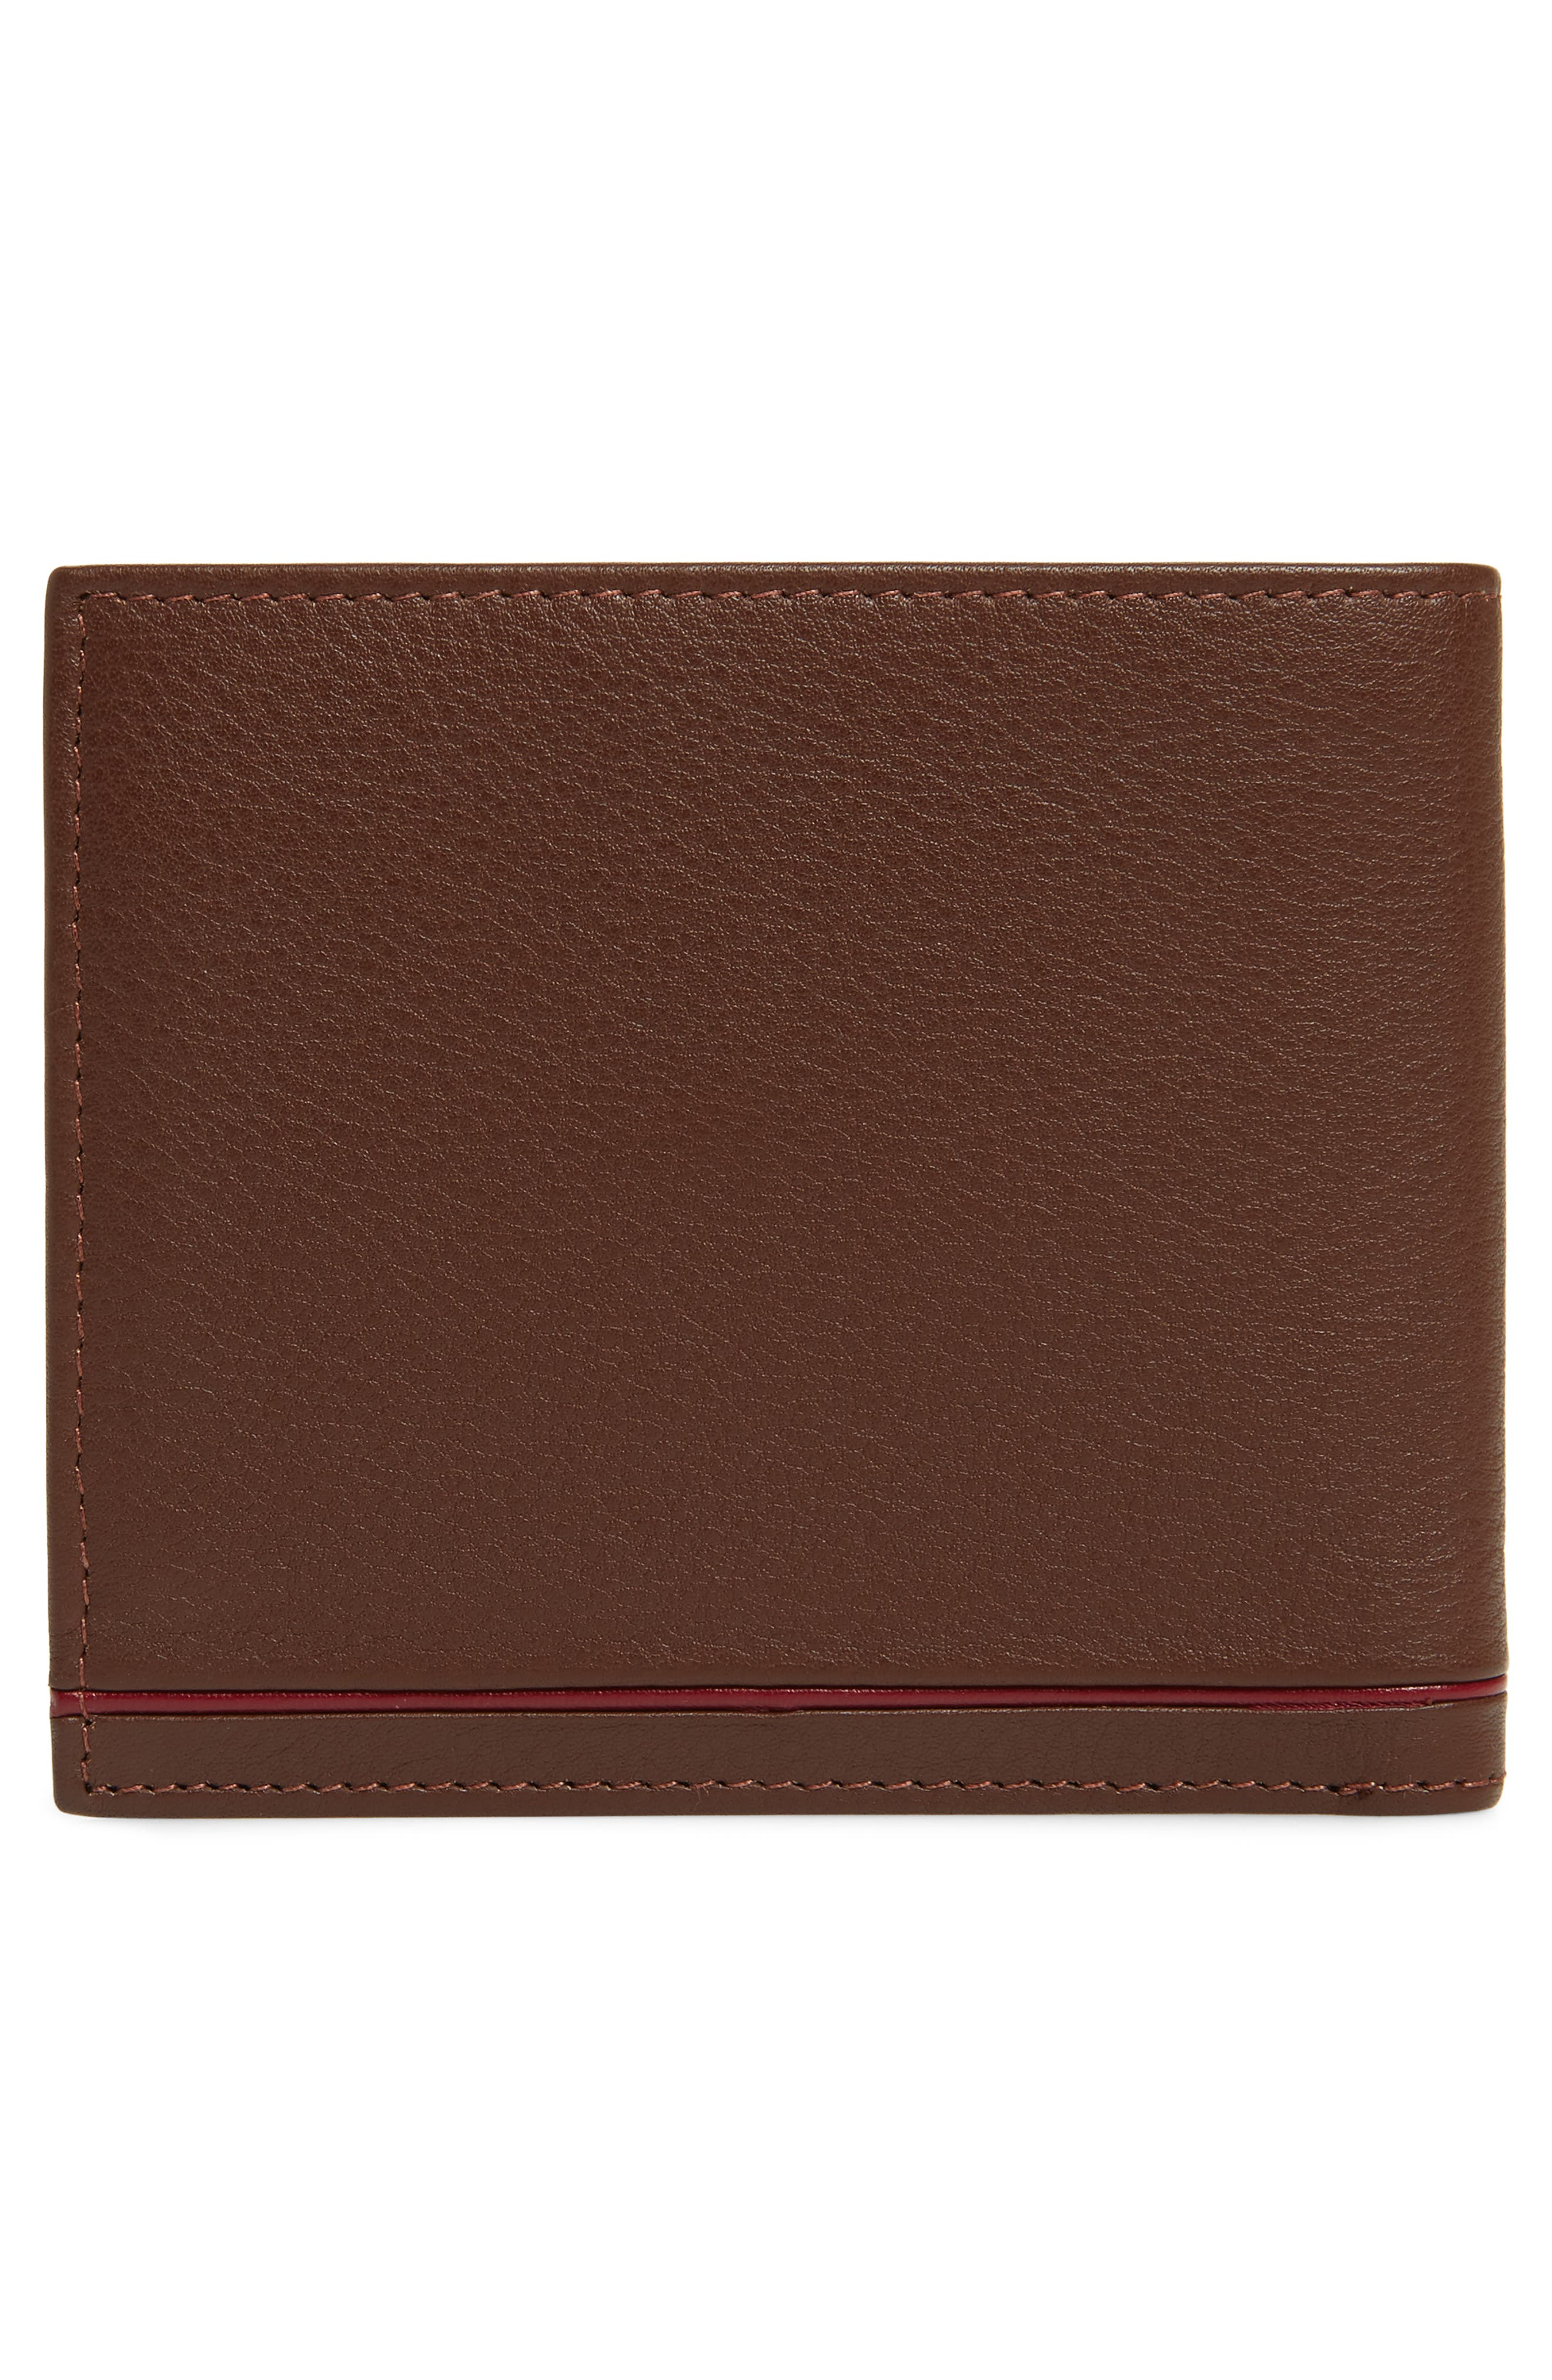 Dooree Leather Wallet,                             Alternate thumbnail 3, color,                             217